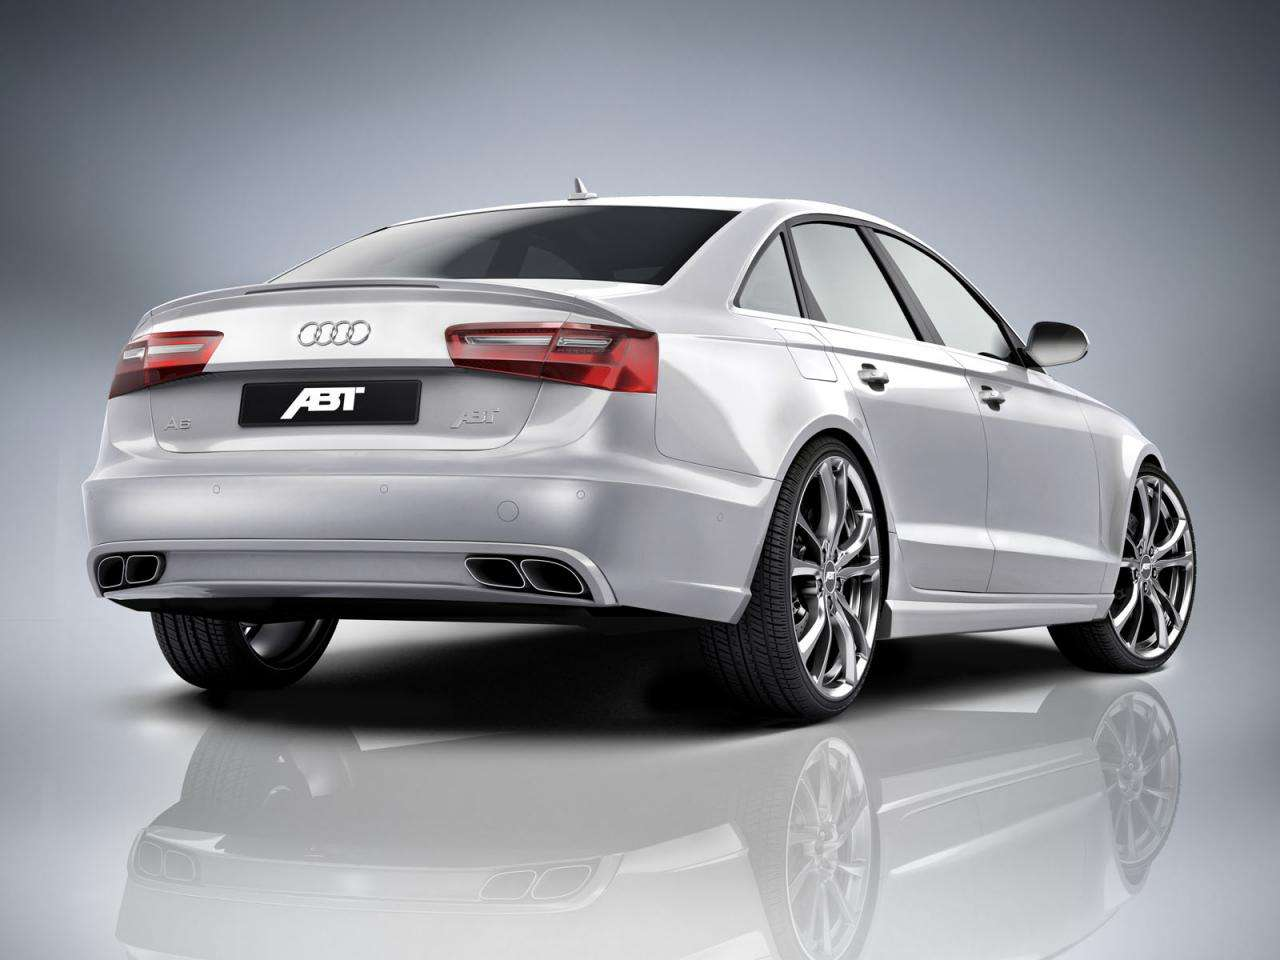 Audi A6 tuning ABT